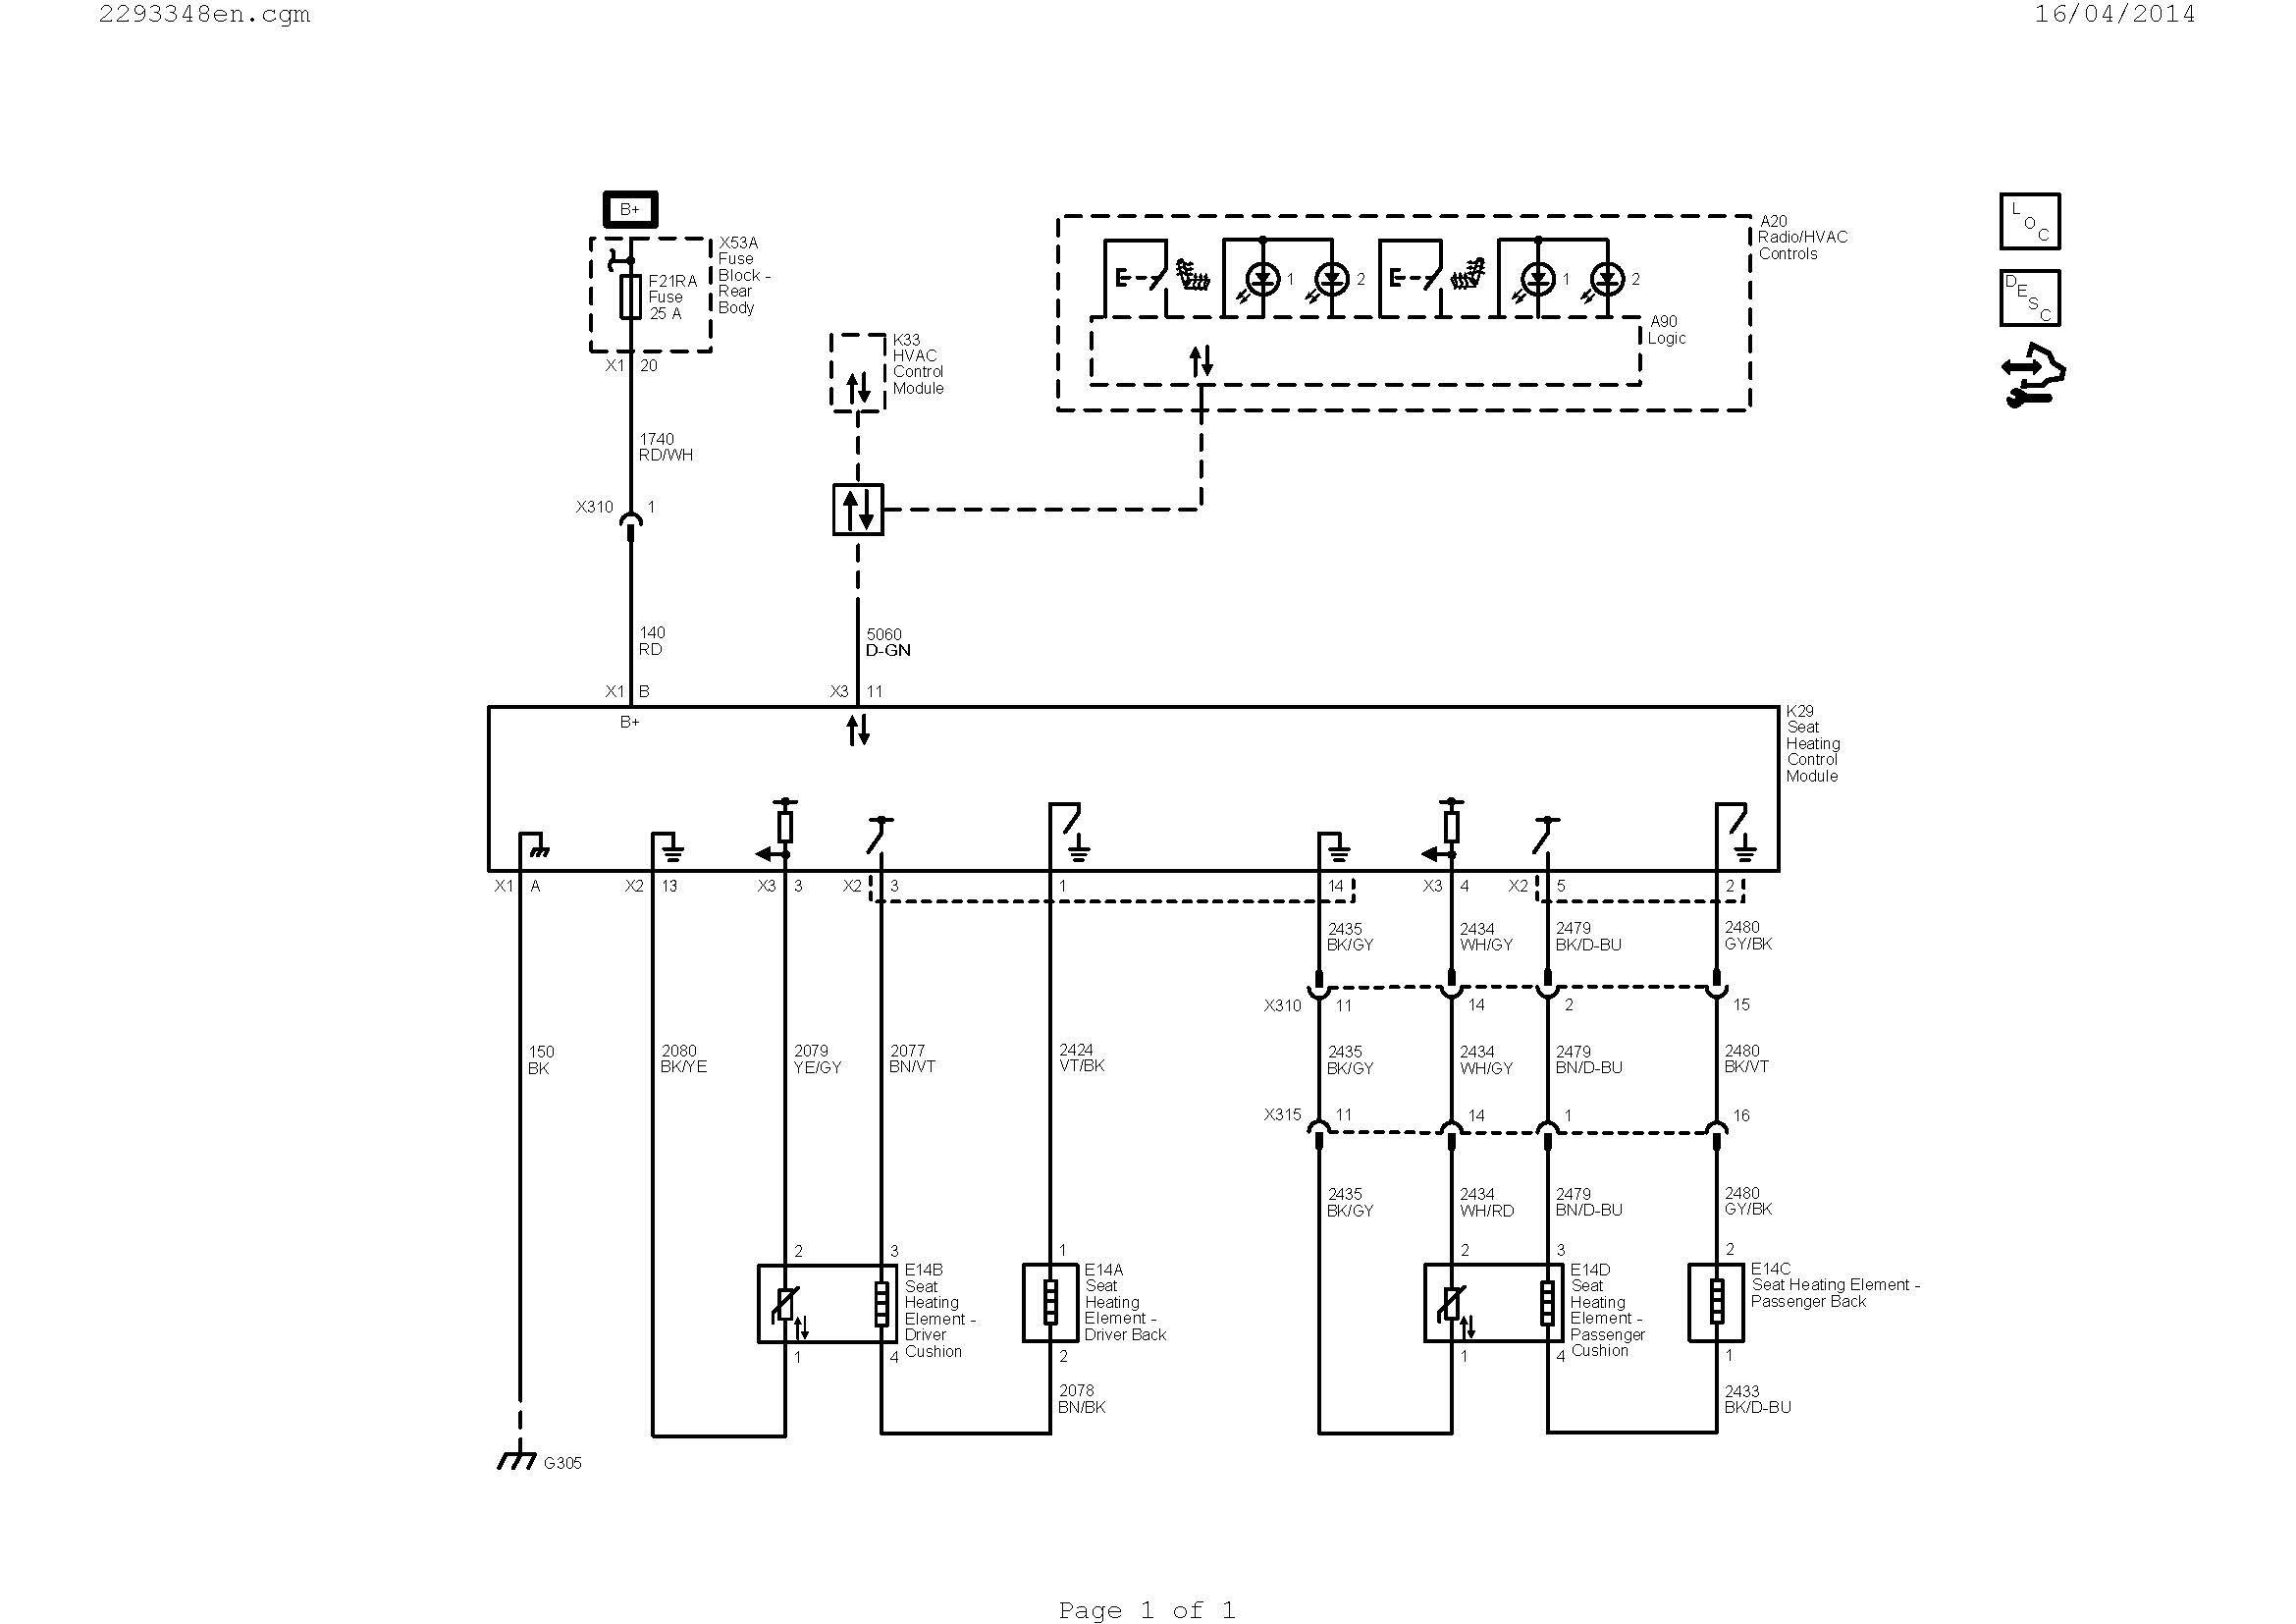 rib2401b wiring diagram Download-ac thermostat wiring diagram Download Wiring A Ac Thermostat Diagram New Wiring Diagram Ac Valid 4-h